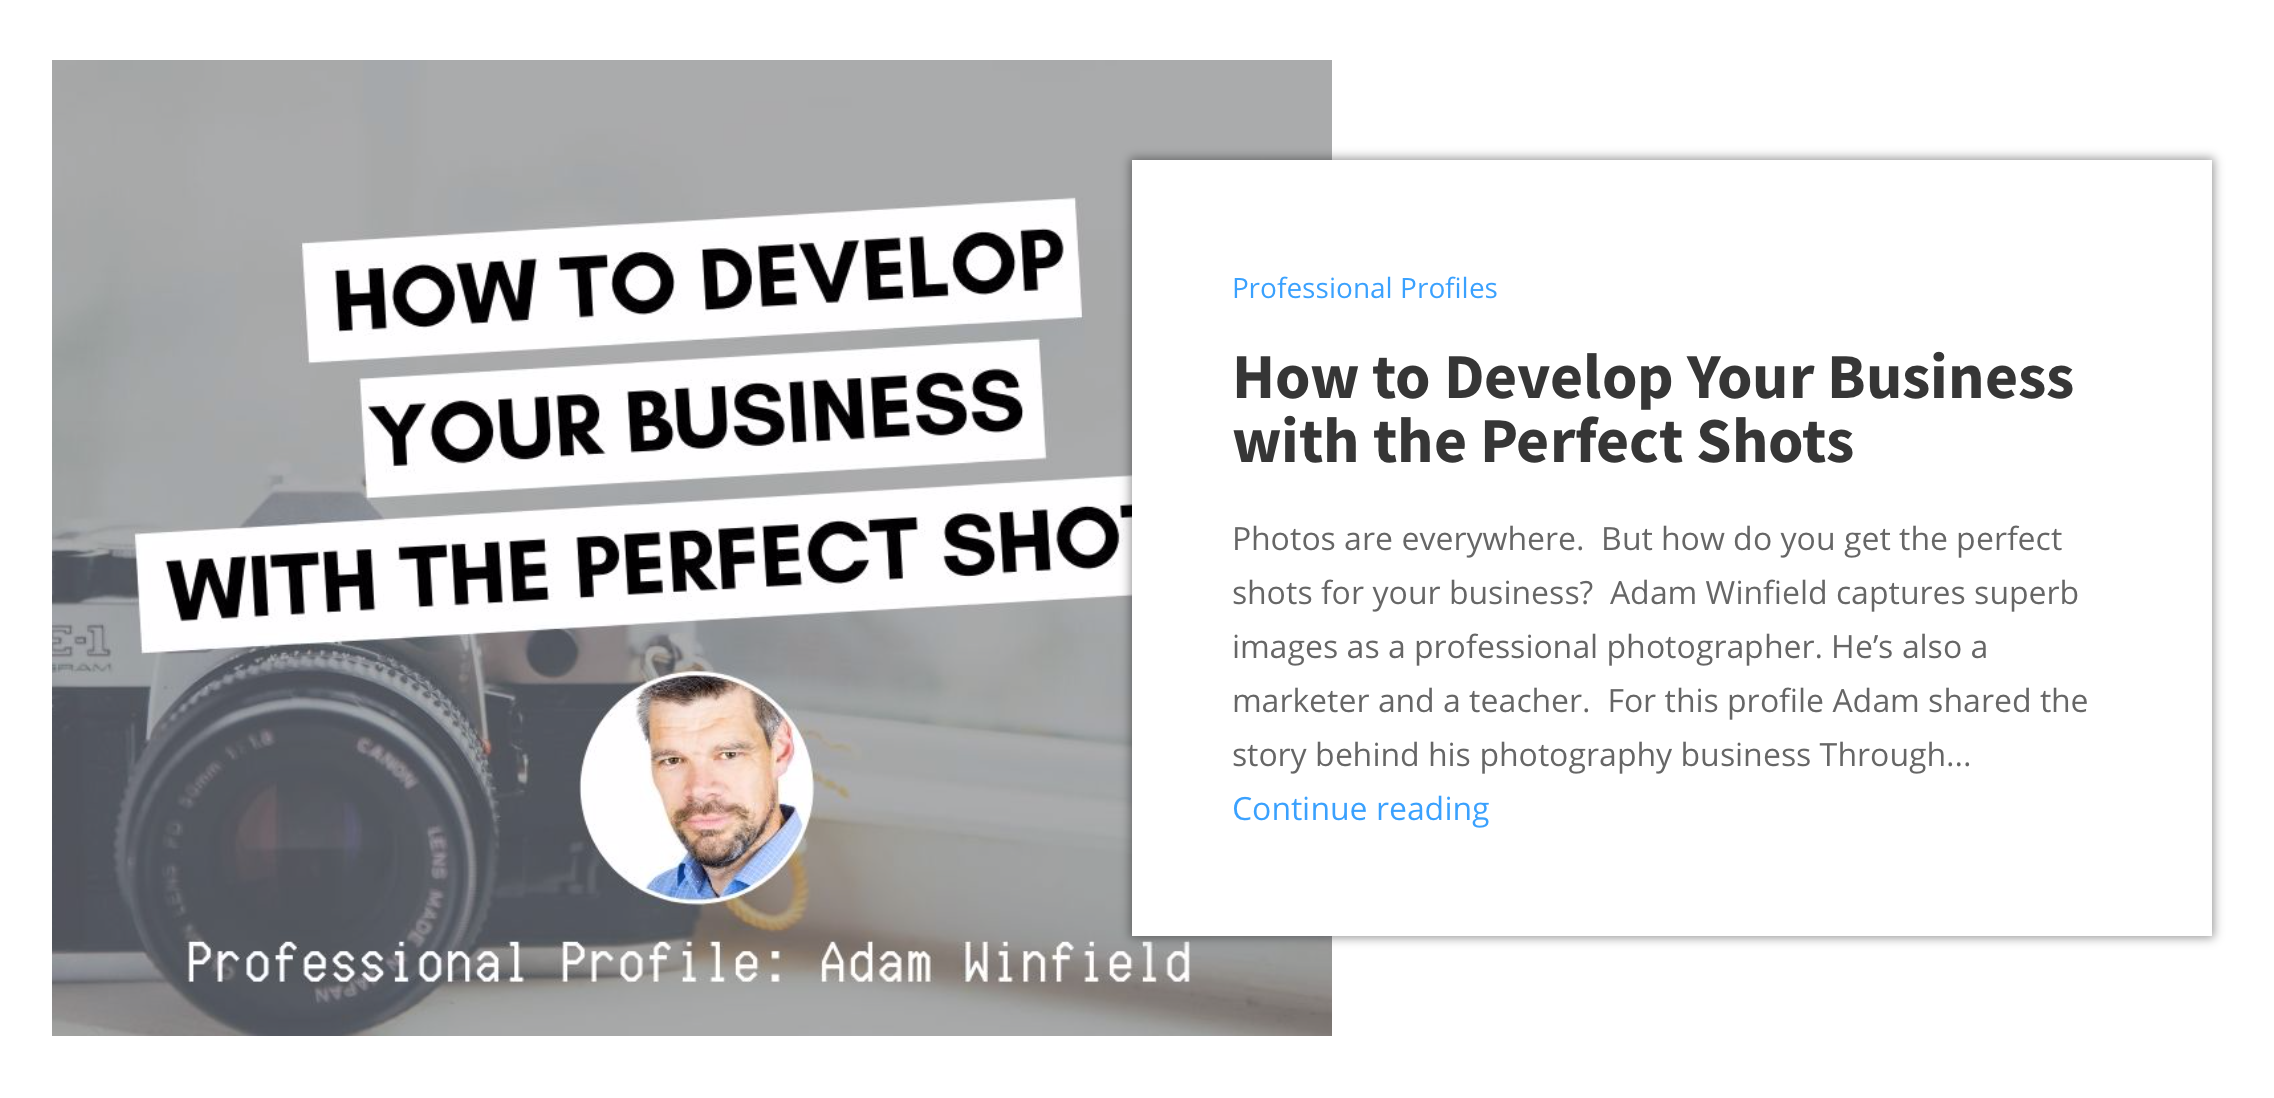 robbeadle.co.uk/how-to-develop-your-business-with-the-perfect-shots-adam-winfield/